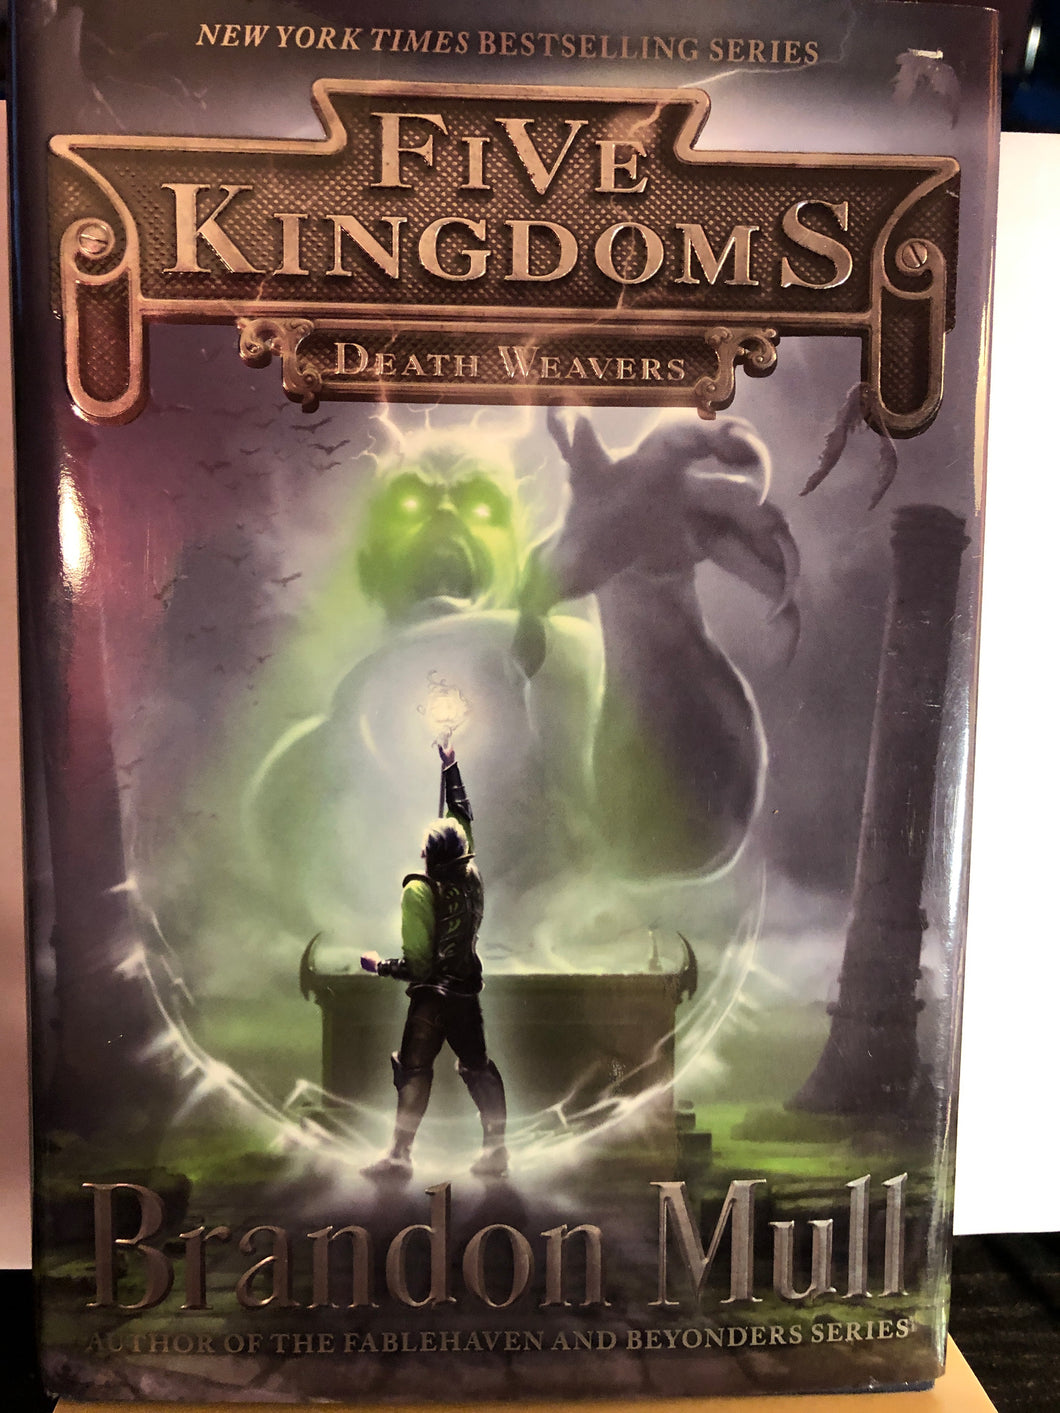 Death Weavers  by Brandon Mull  (Five Kingdoms #4)  Hardcover